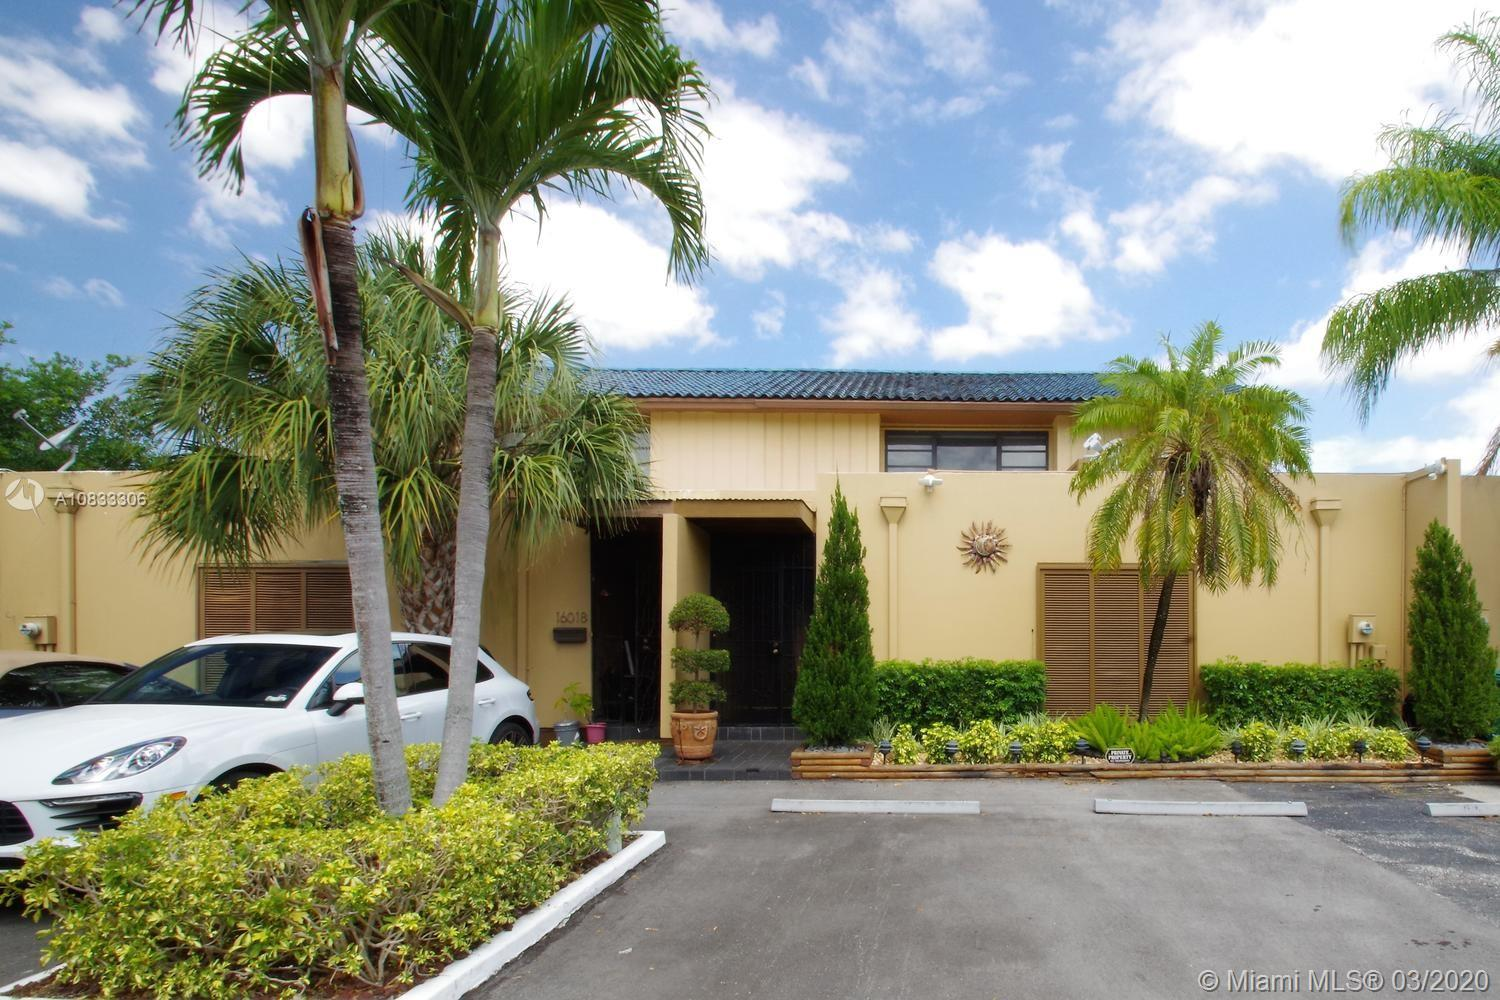 Great opportunity to own this spacious townhome with fantastic floor plan in Miami Lakes,Serine lake off of the back patio, close to GREAT SCHOOLS, parks, shopping and dining.